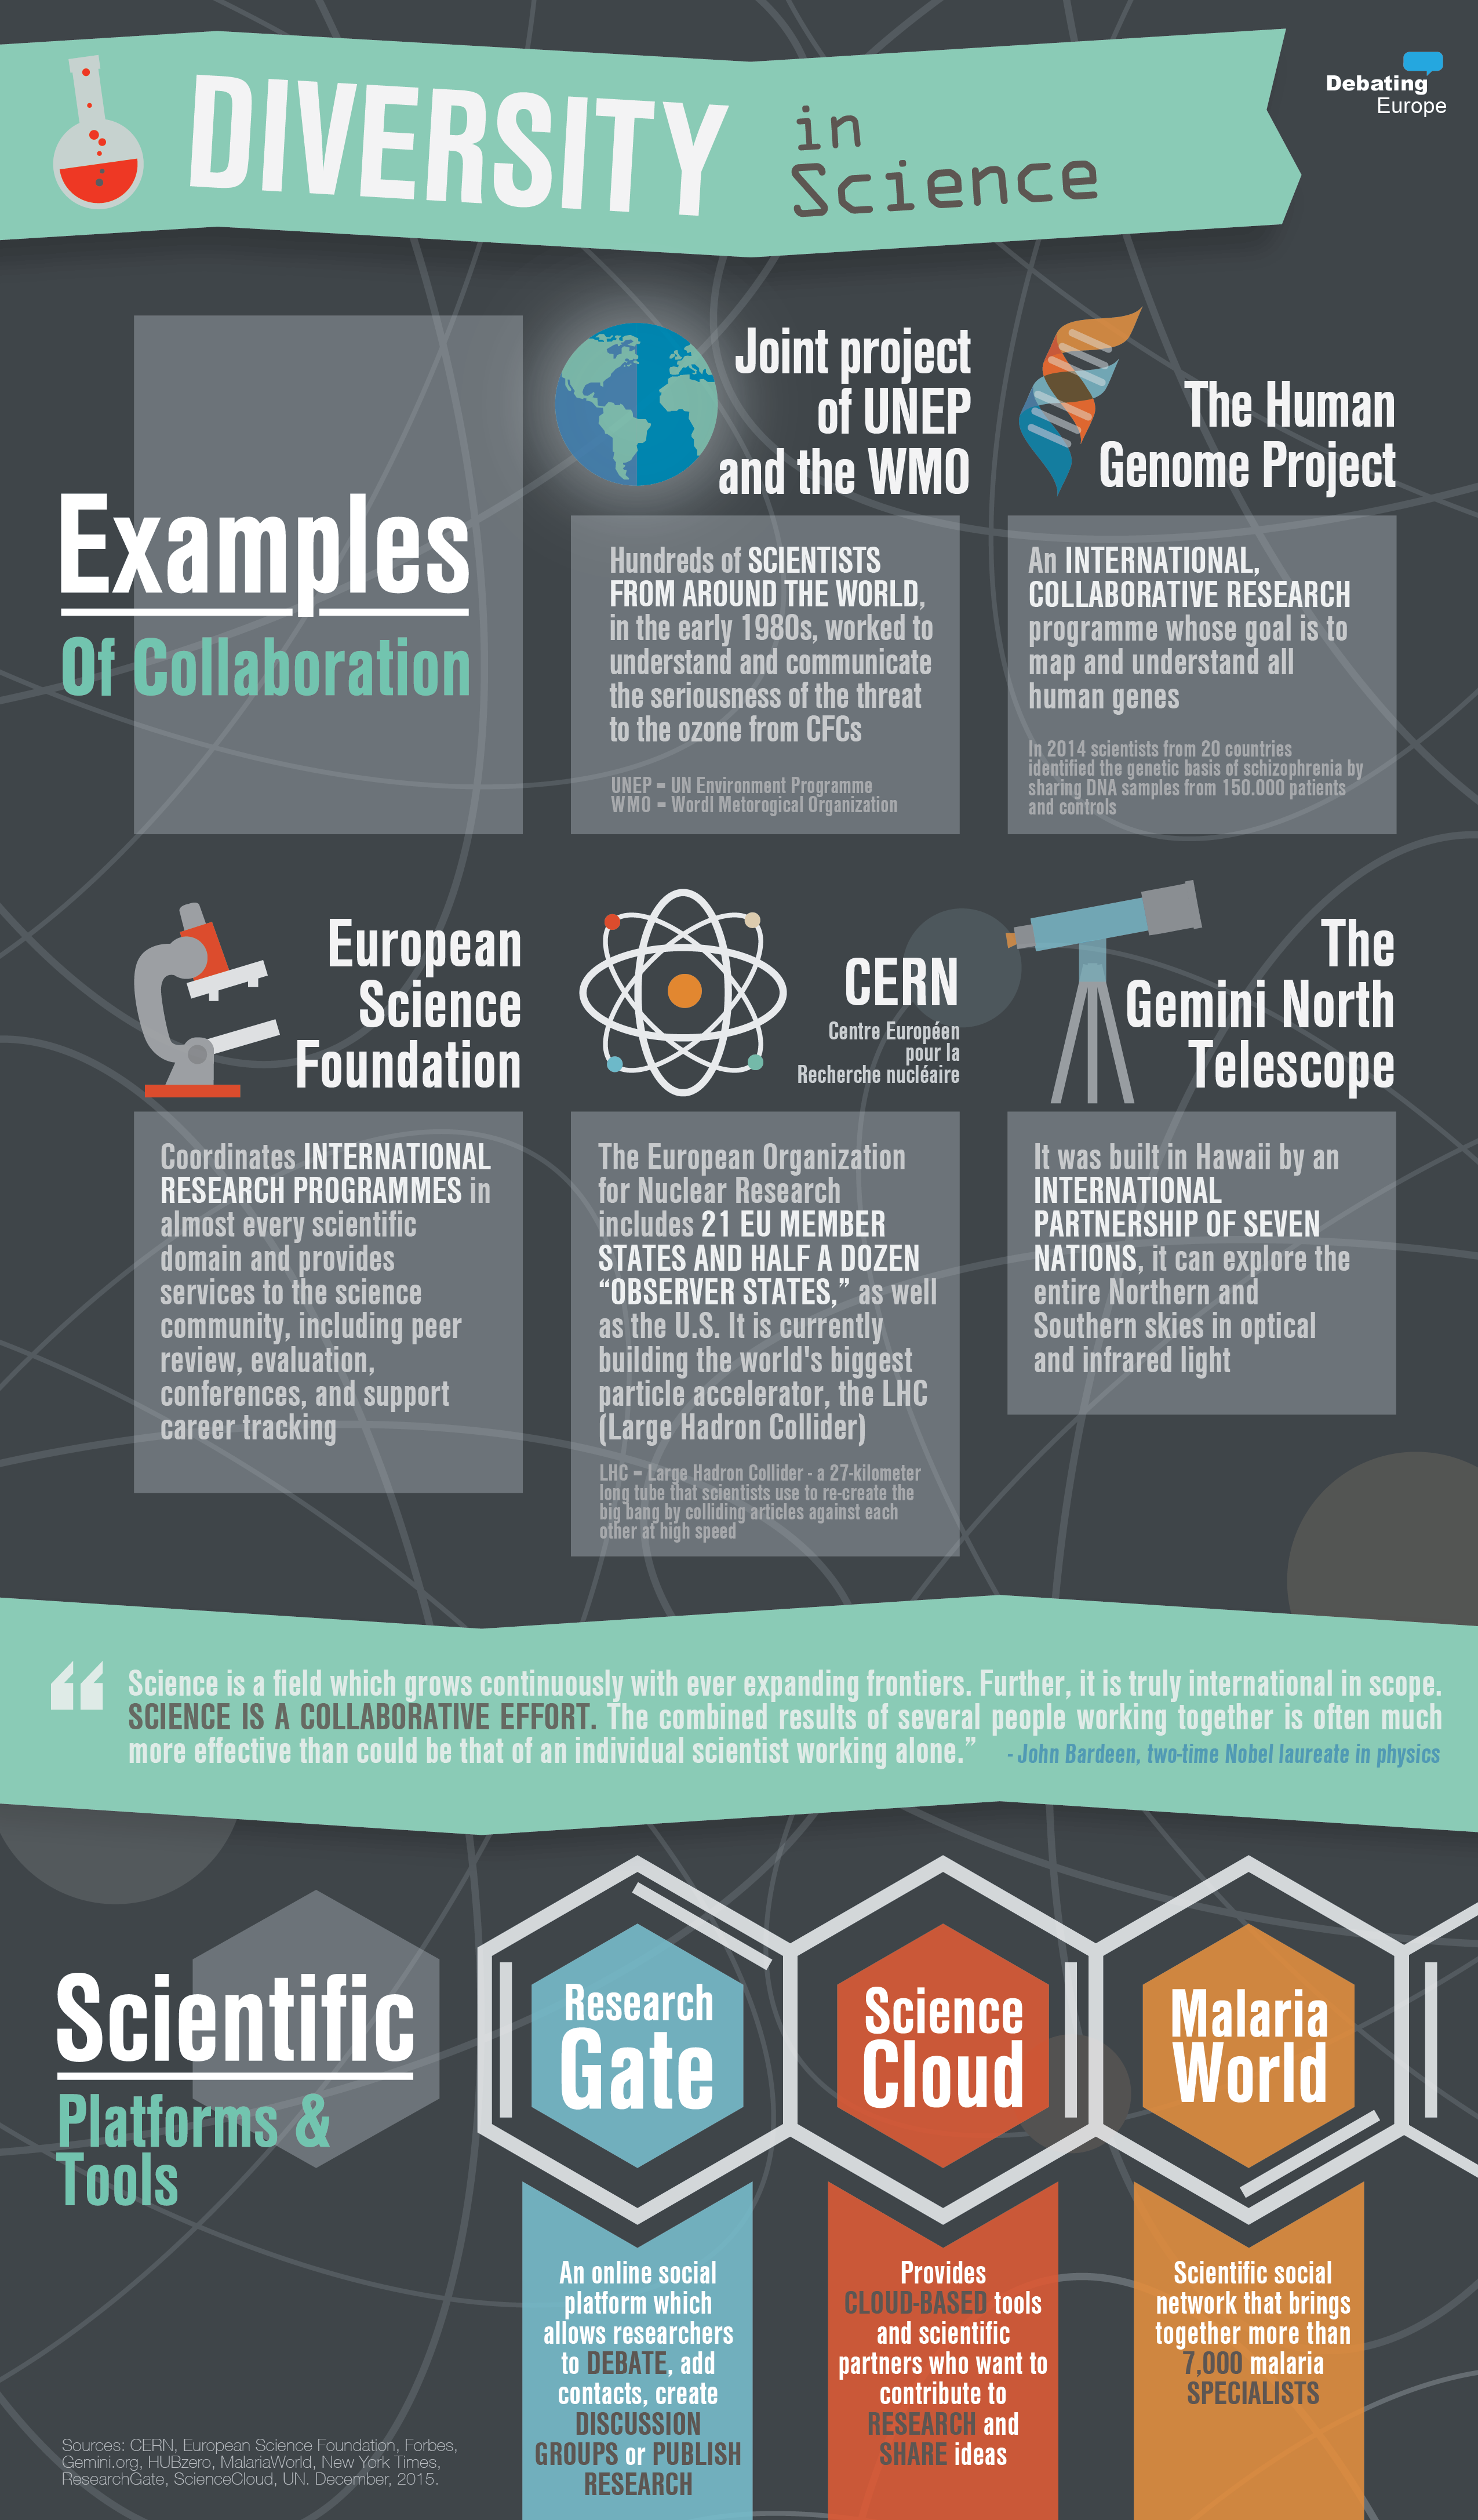 diversity-science-infographic